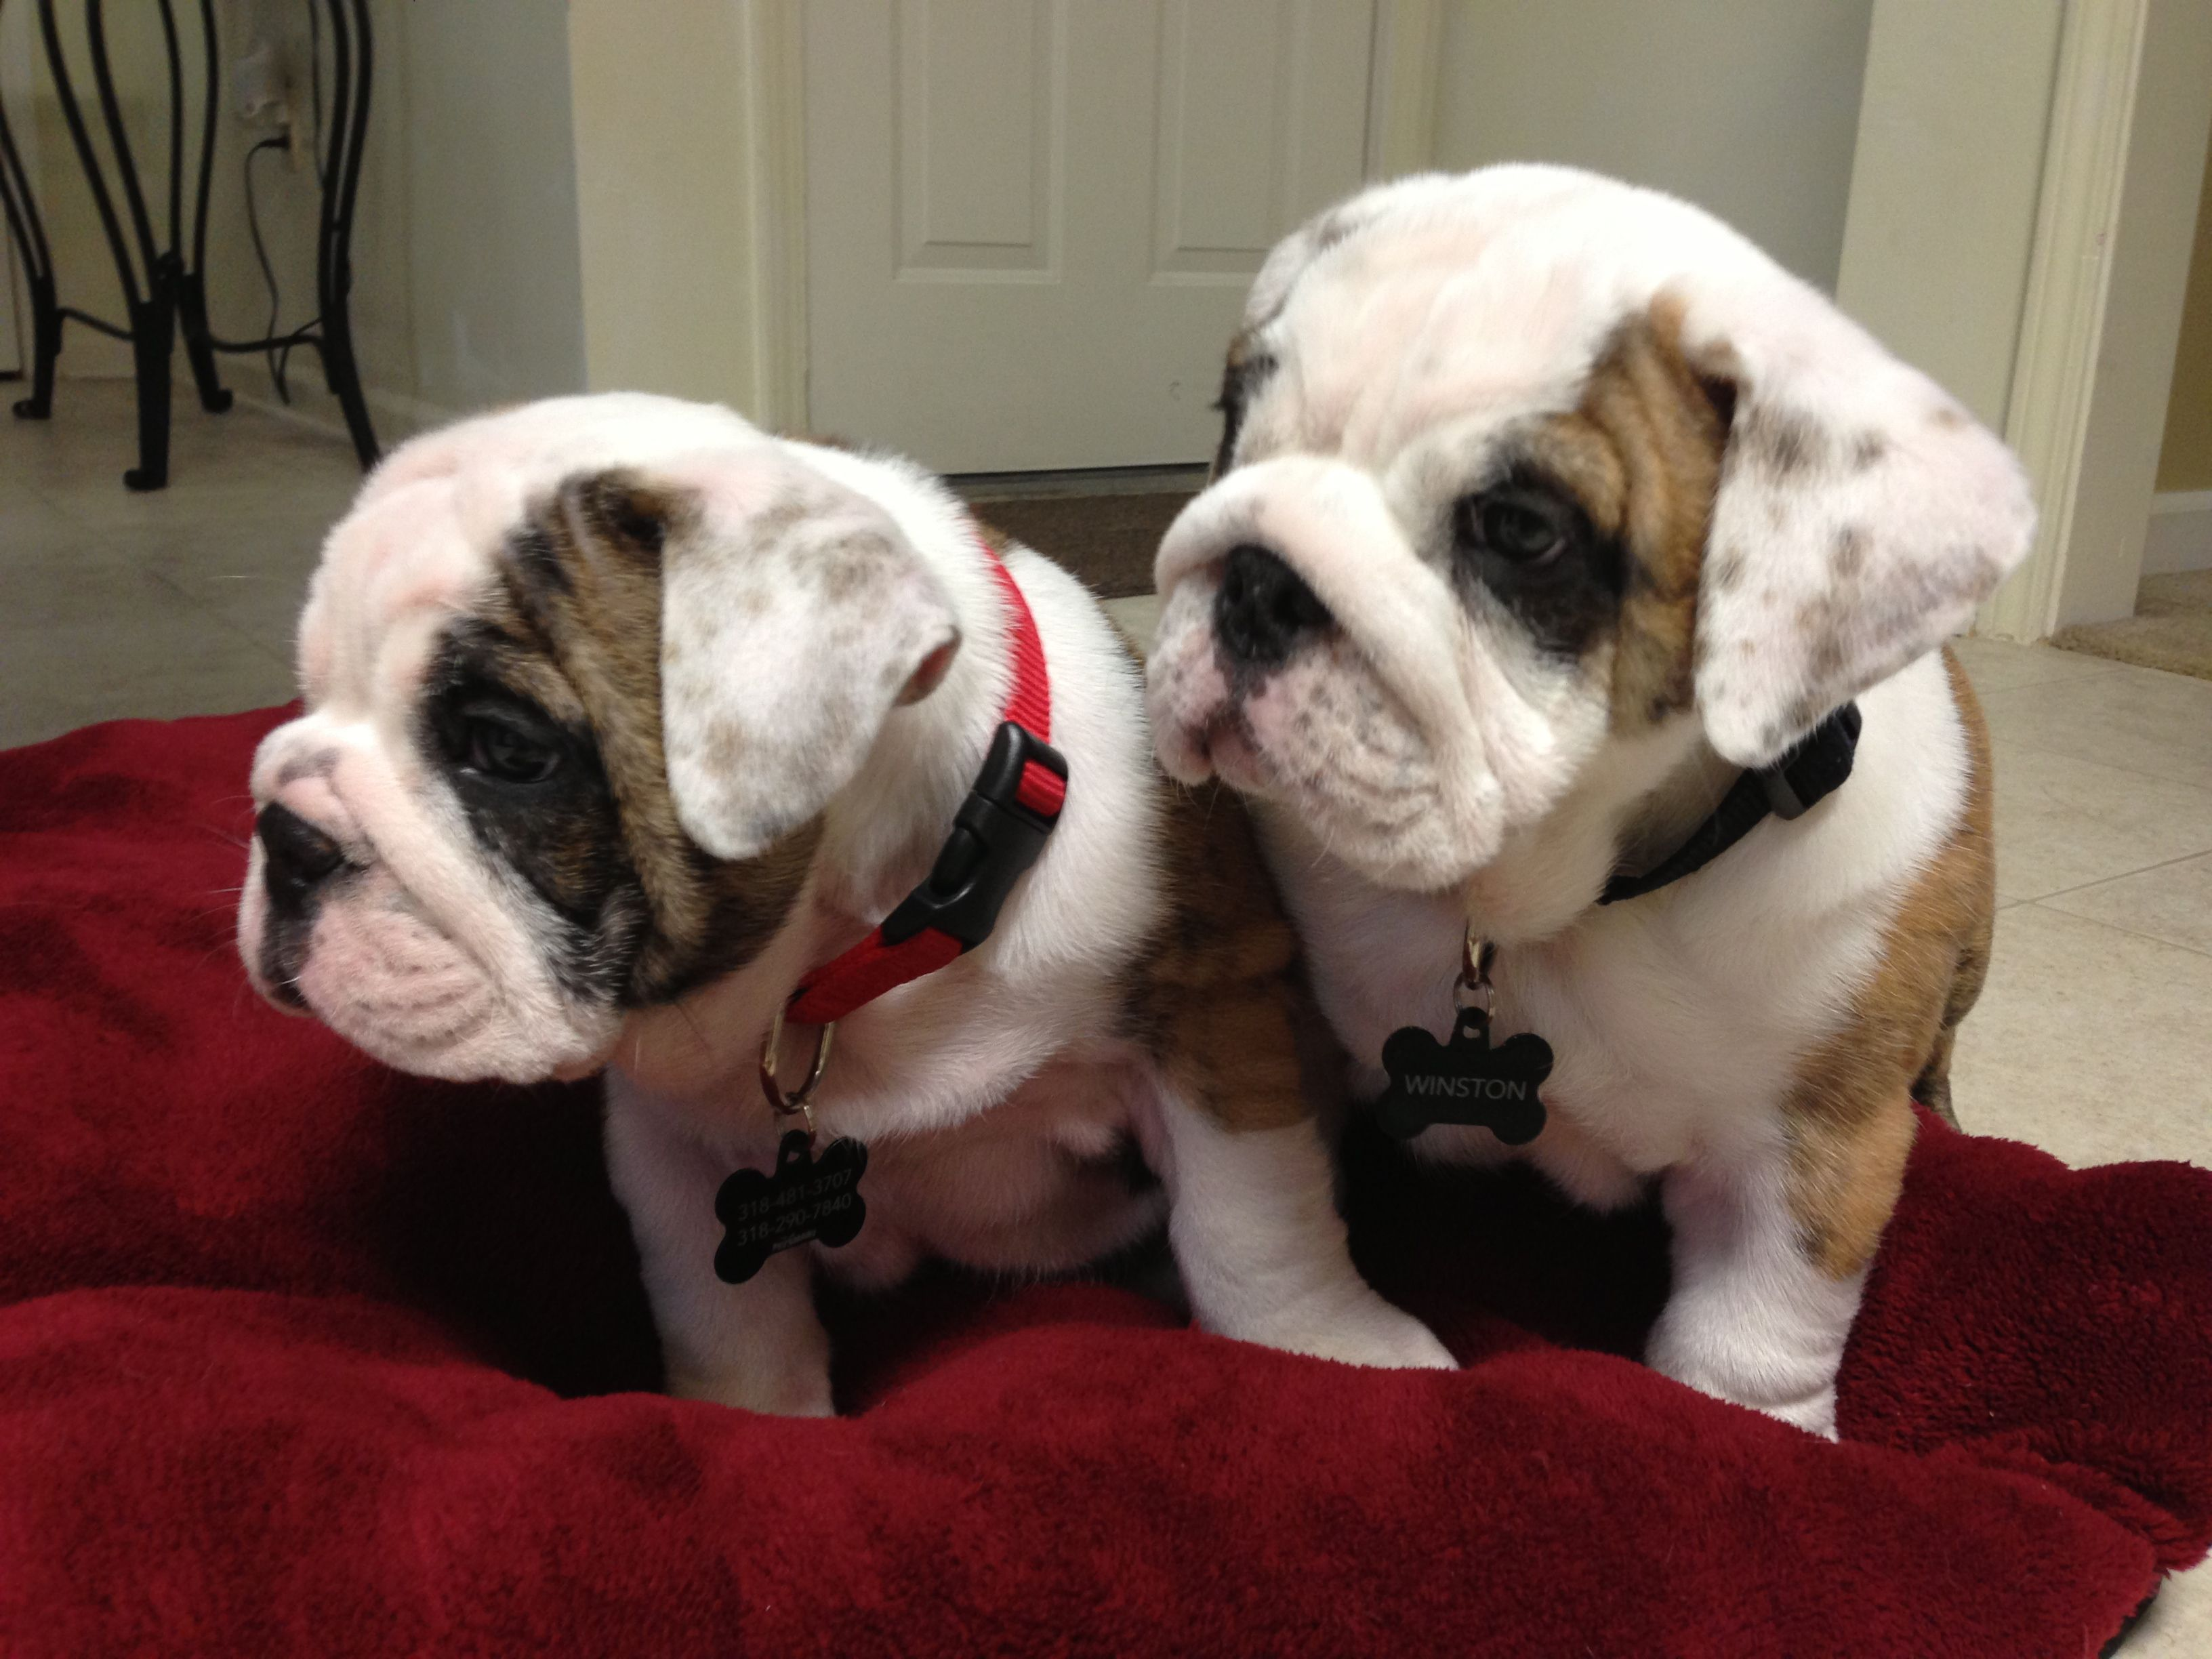 Pin By Trudy Pennings On Engelse Bulldogs In 2020 English